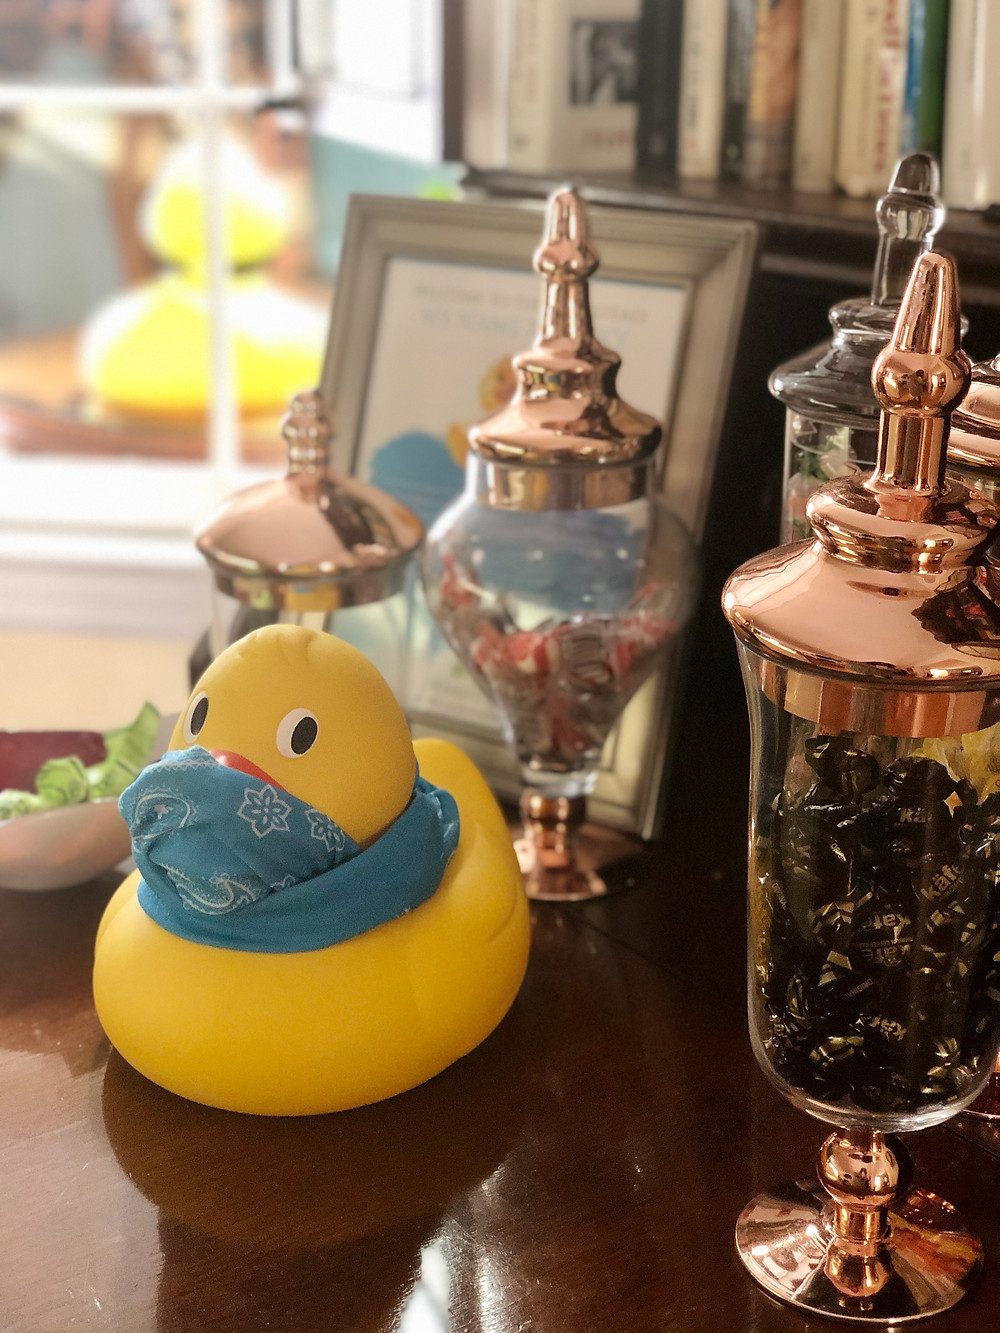 A yellow rubber Duckie wearing a face masks sits on a hutch surrounded by glass candy dishes filled with confections.